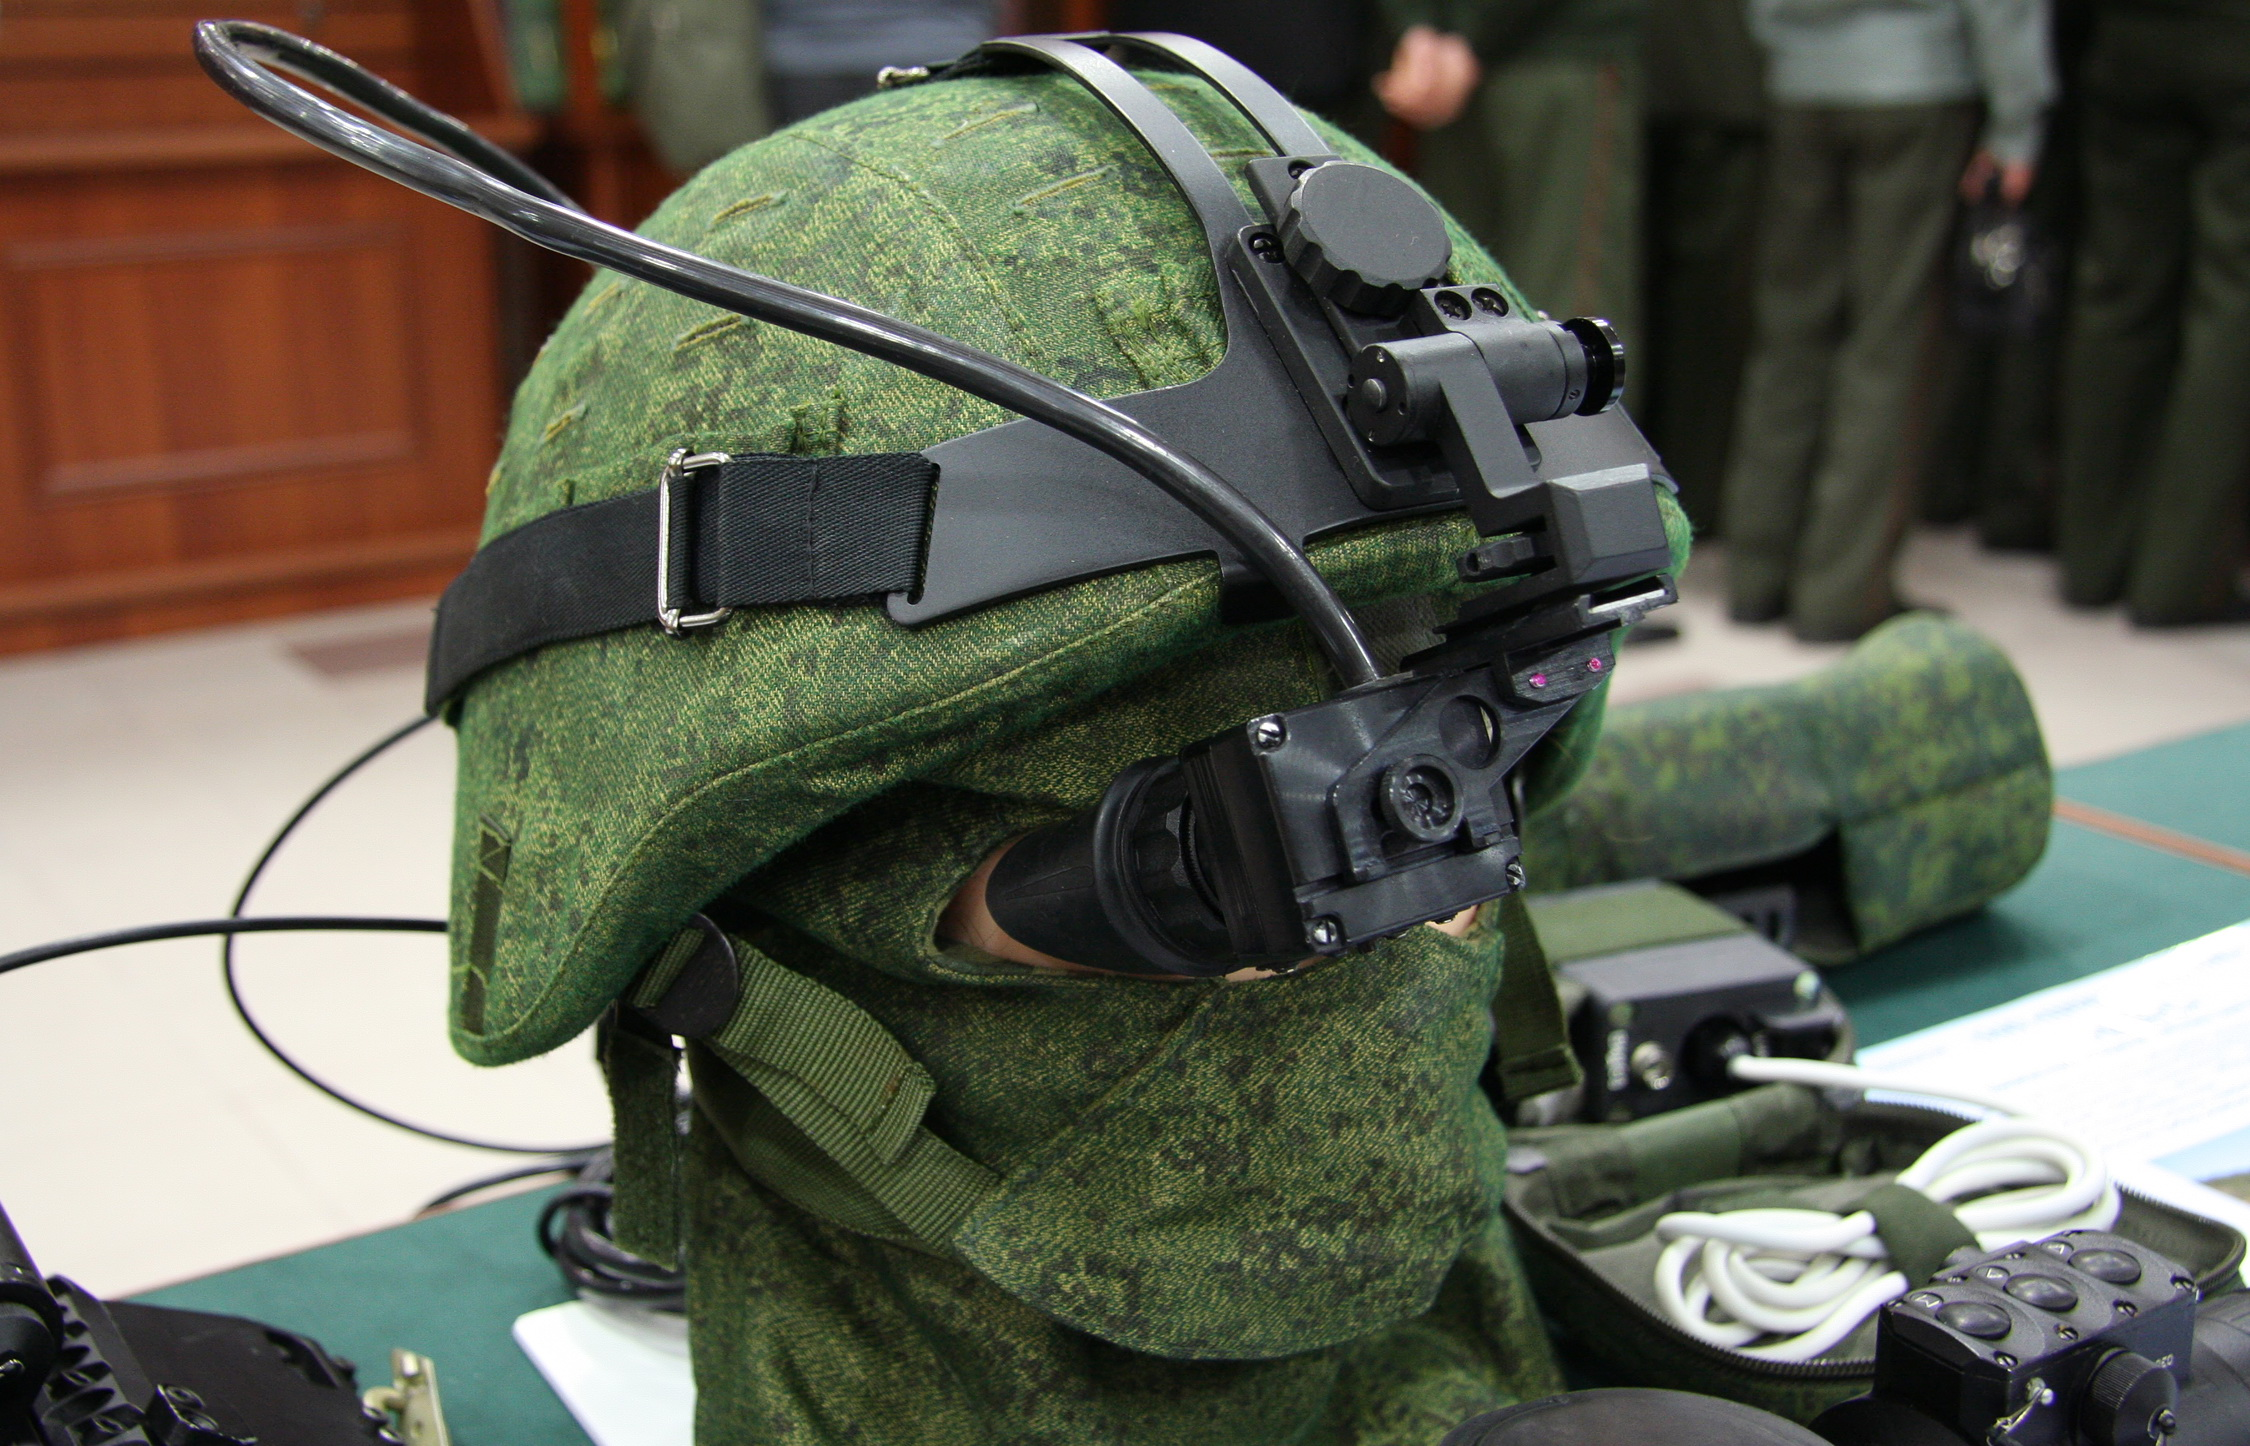 https://upload.wikimedia.org/wikipedia/commons/b/b5/Helmet_monitor_tsniitochmash35.jpg